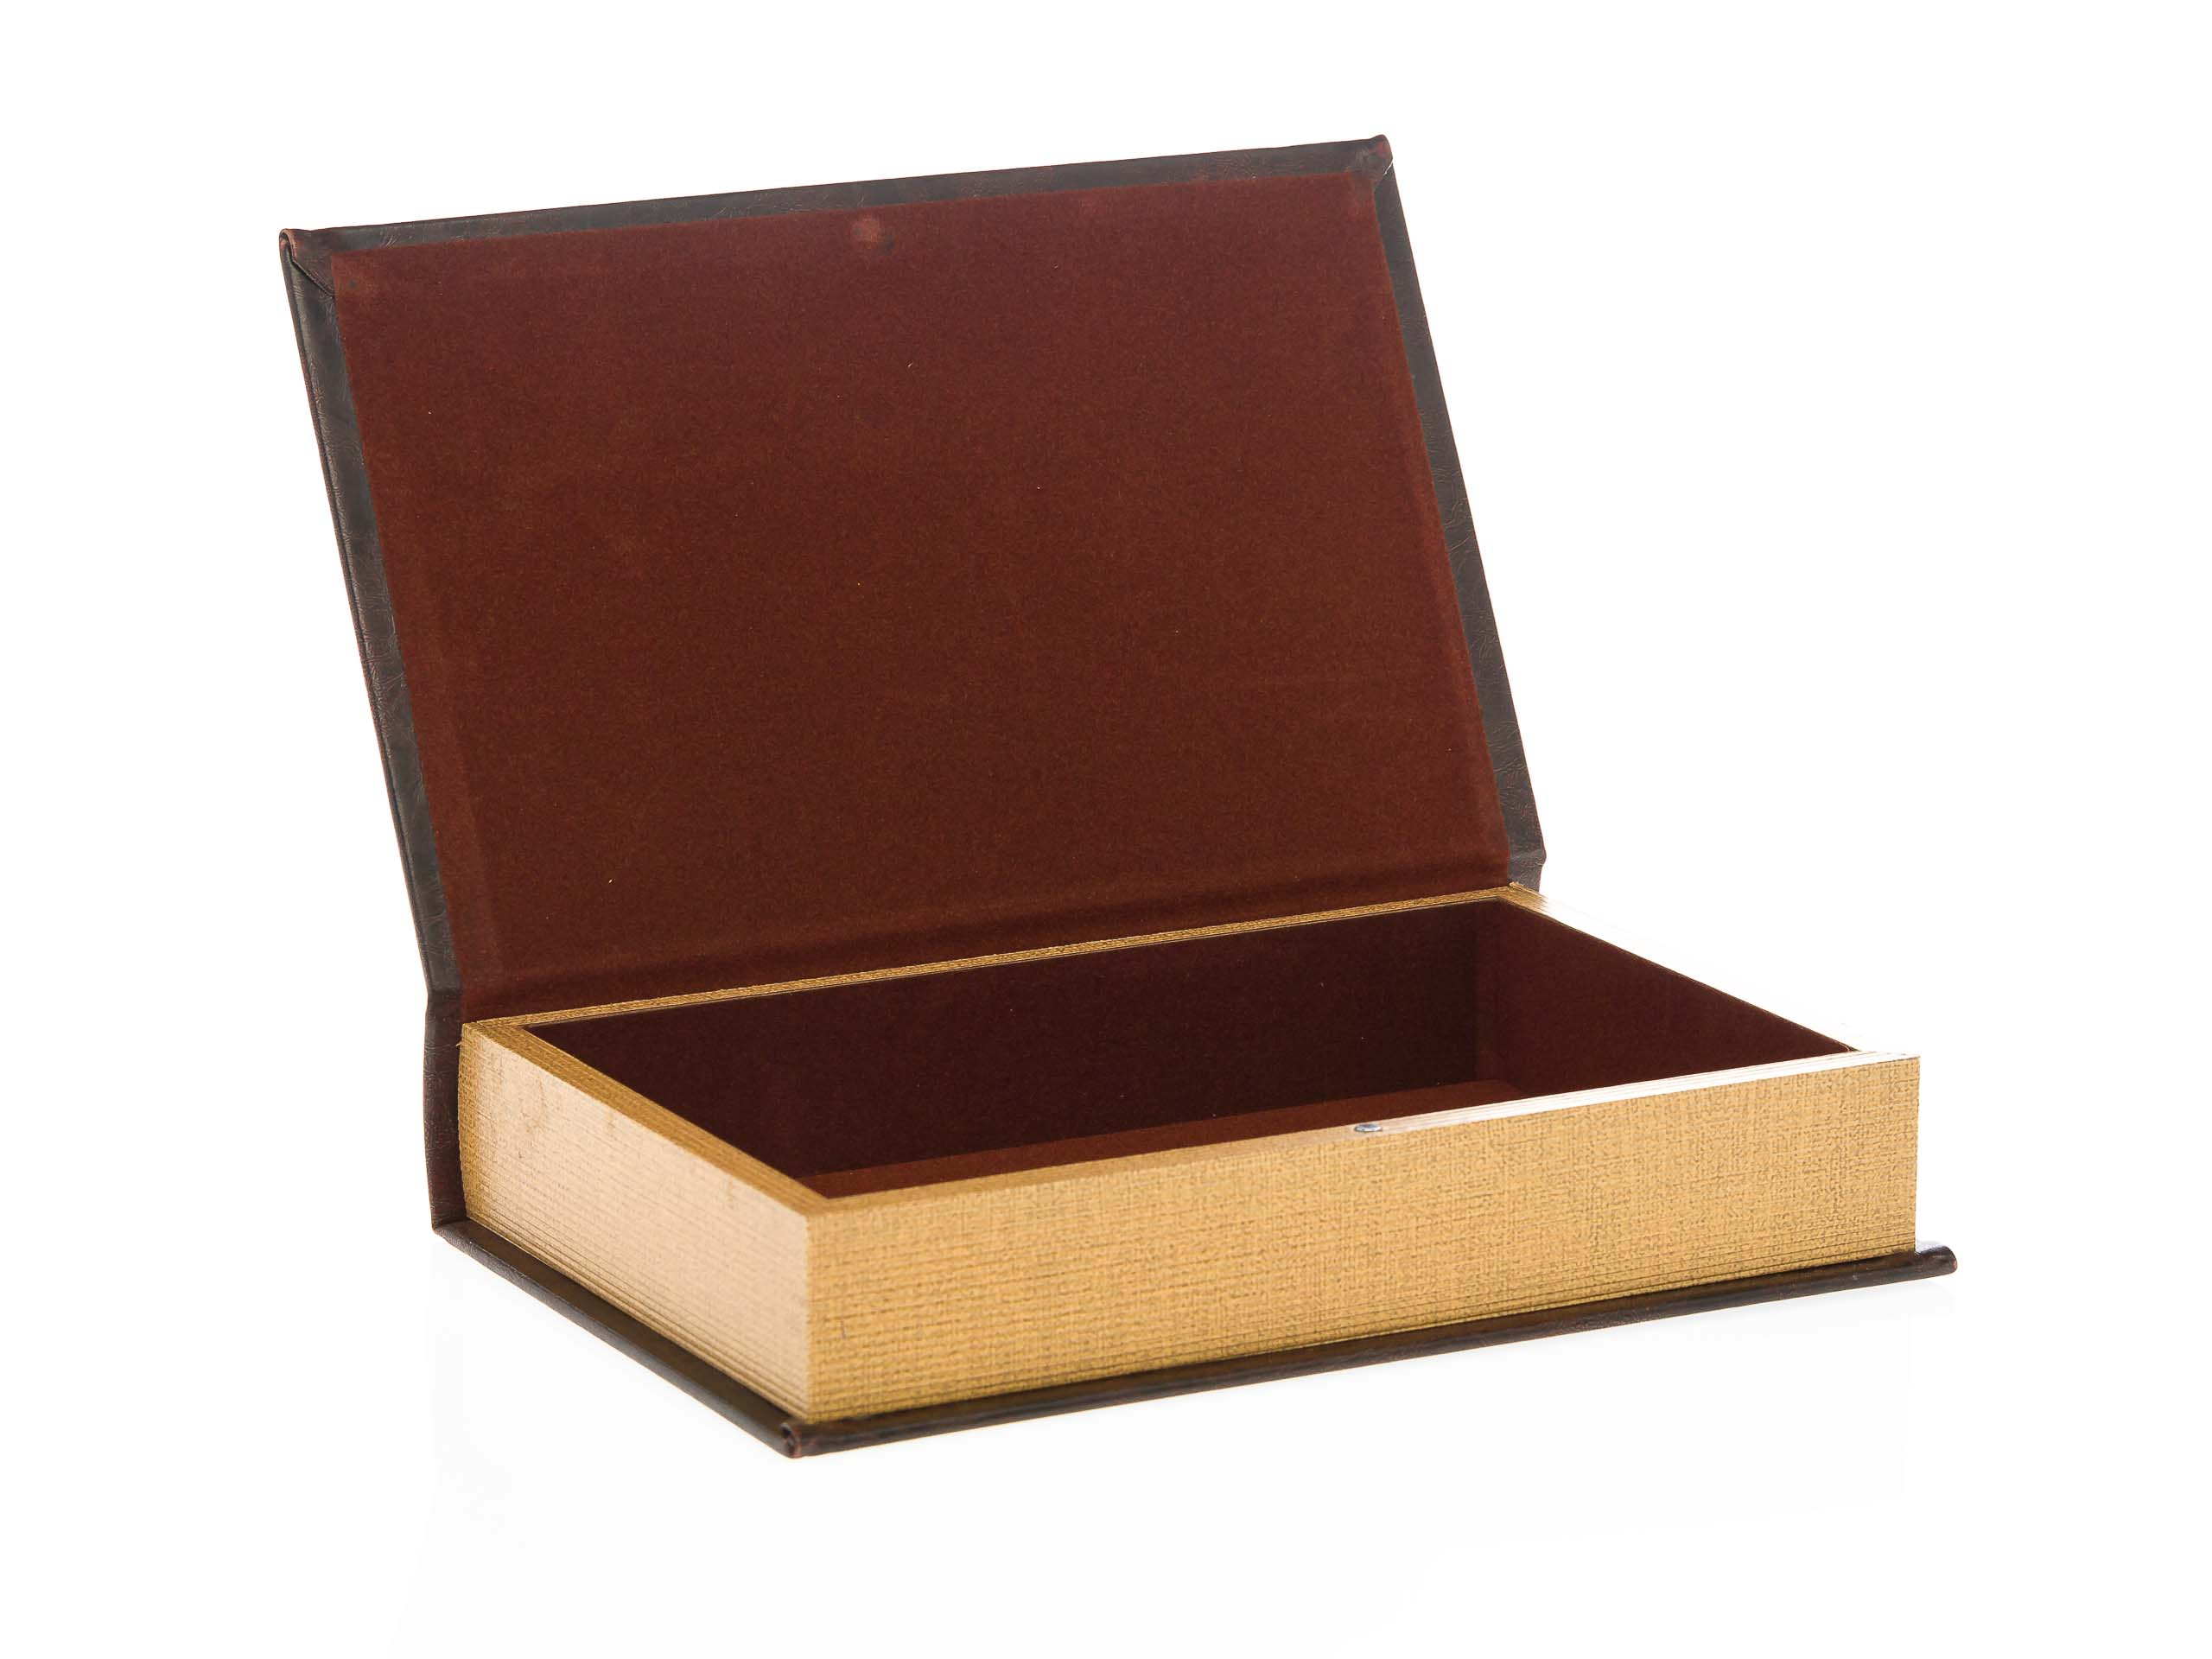 Beautiful Antique Leatherette Covered Wooden Box For Sale Boxes Woodenware